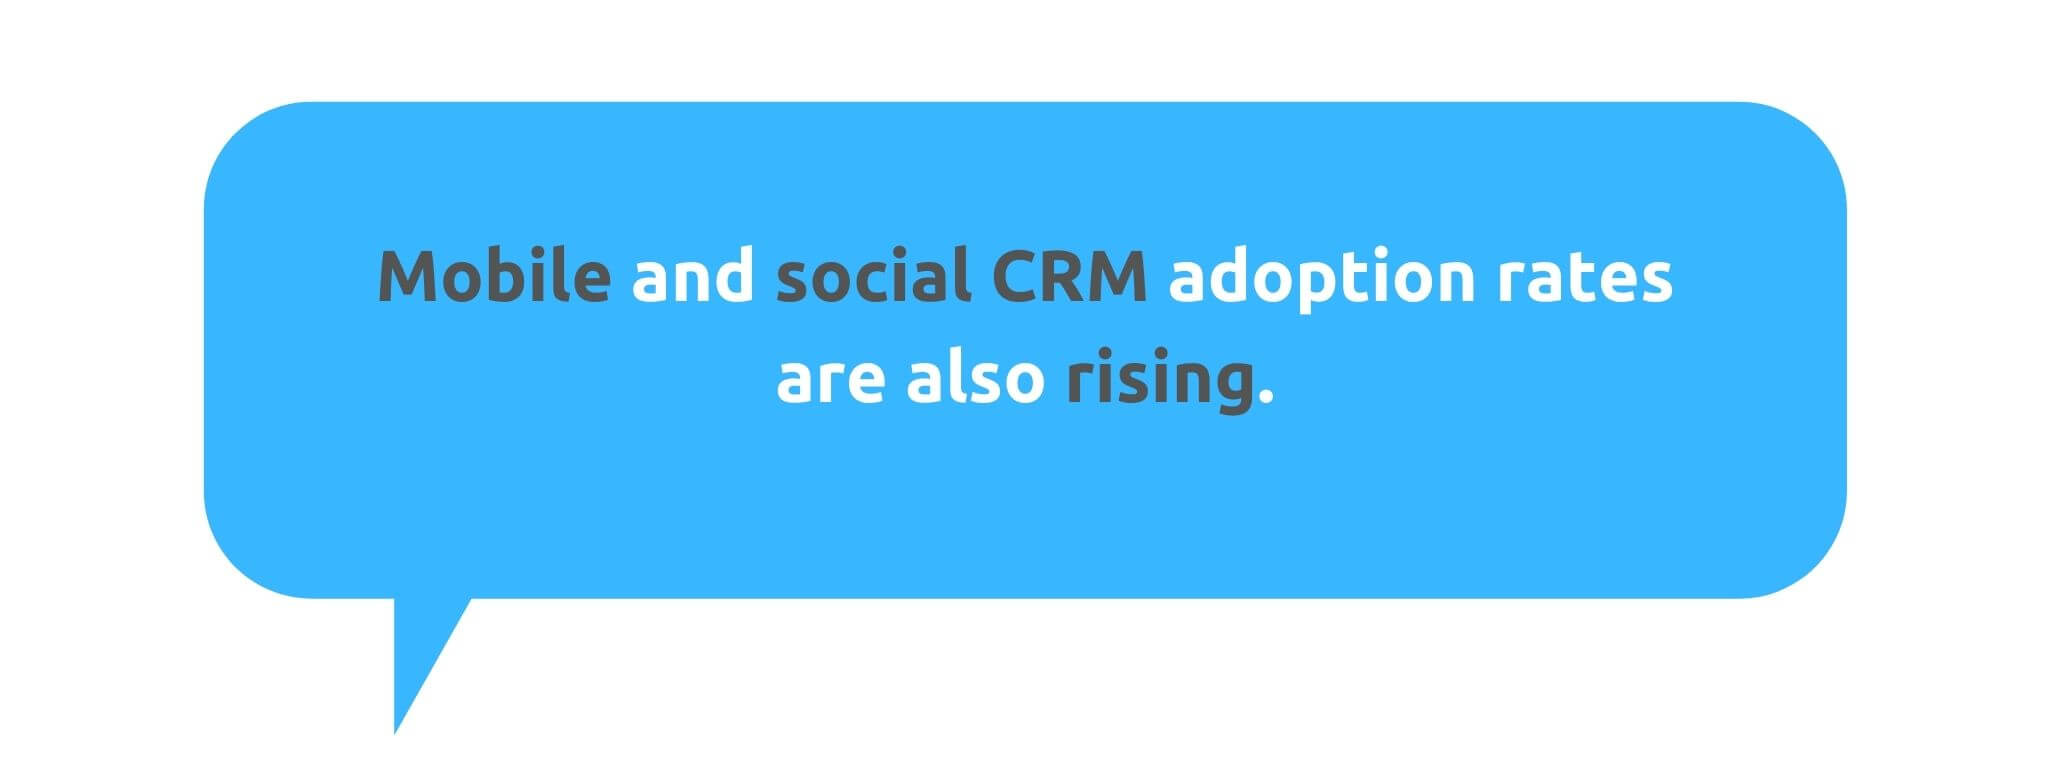 Mobile and Social CRM Are Also Rising - 50+ CRM Stats - Replyco Helpdesk Software for eCommerce